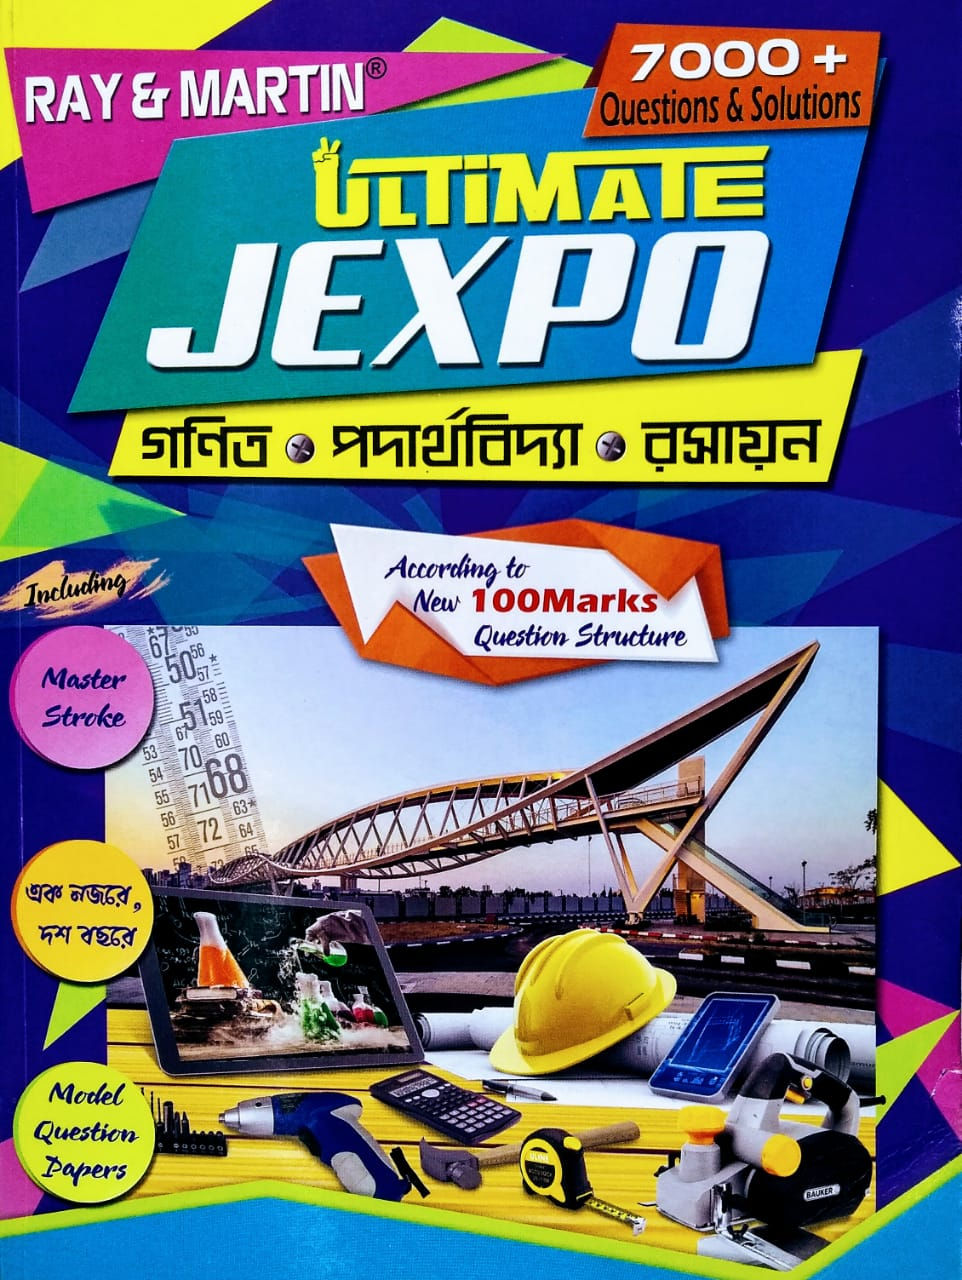 ULTIMATE JEXPO BY RAY & MARTIN New Edition